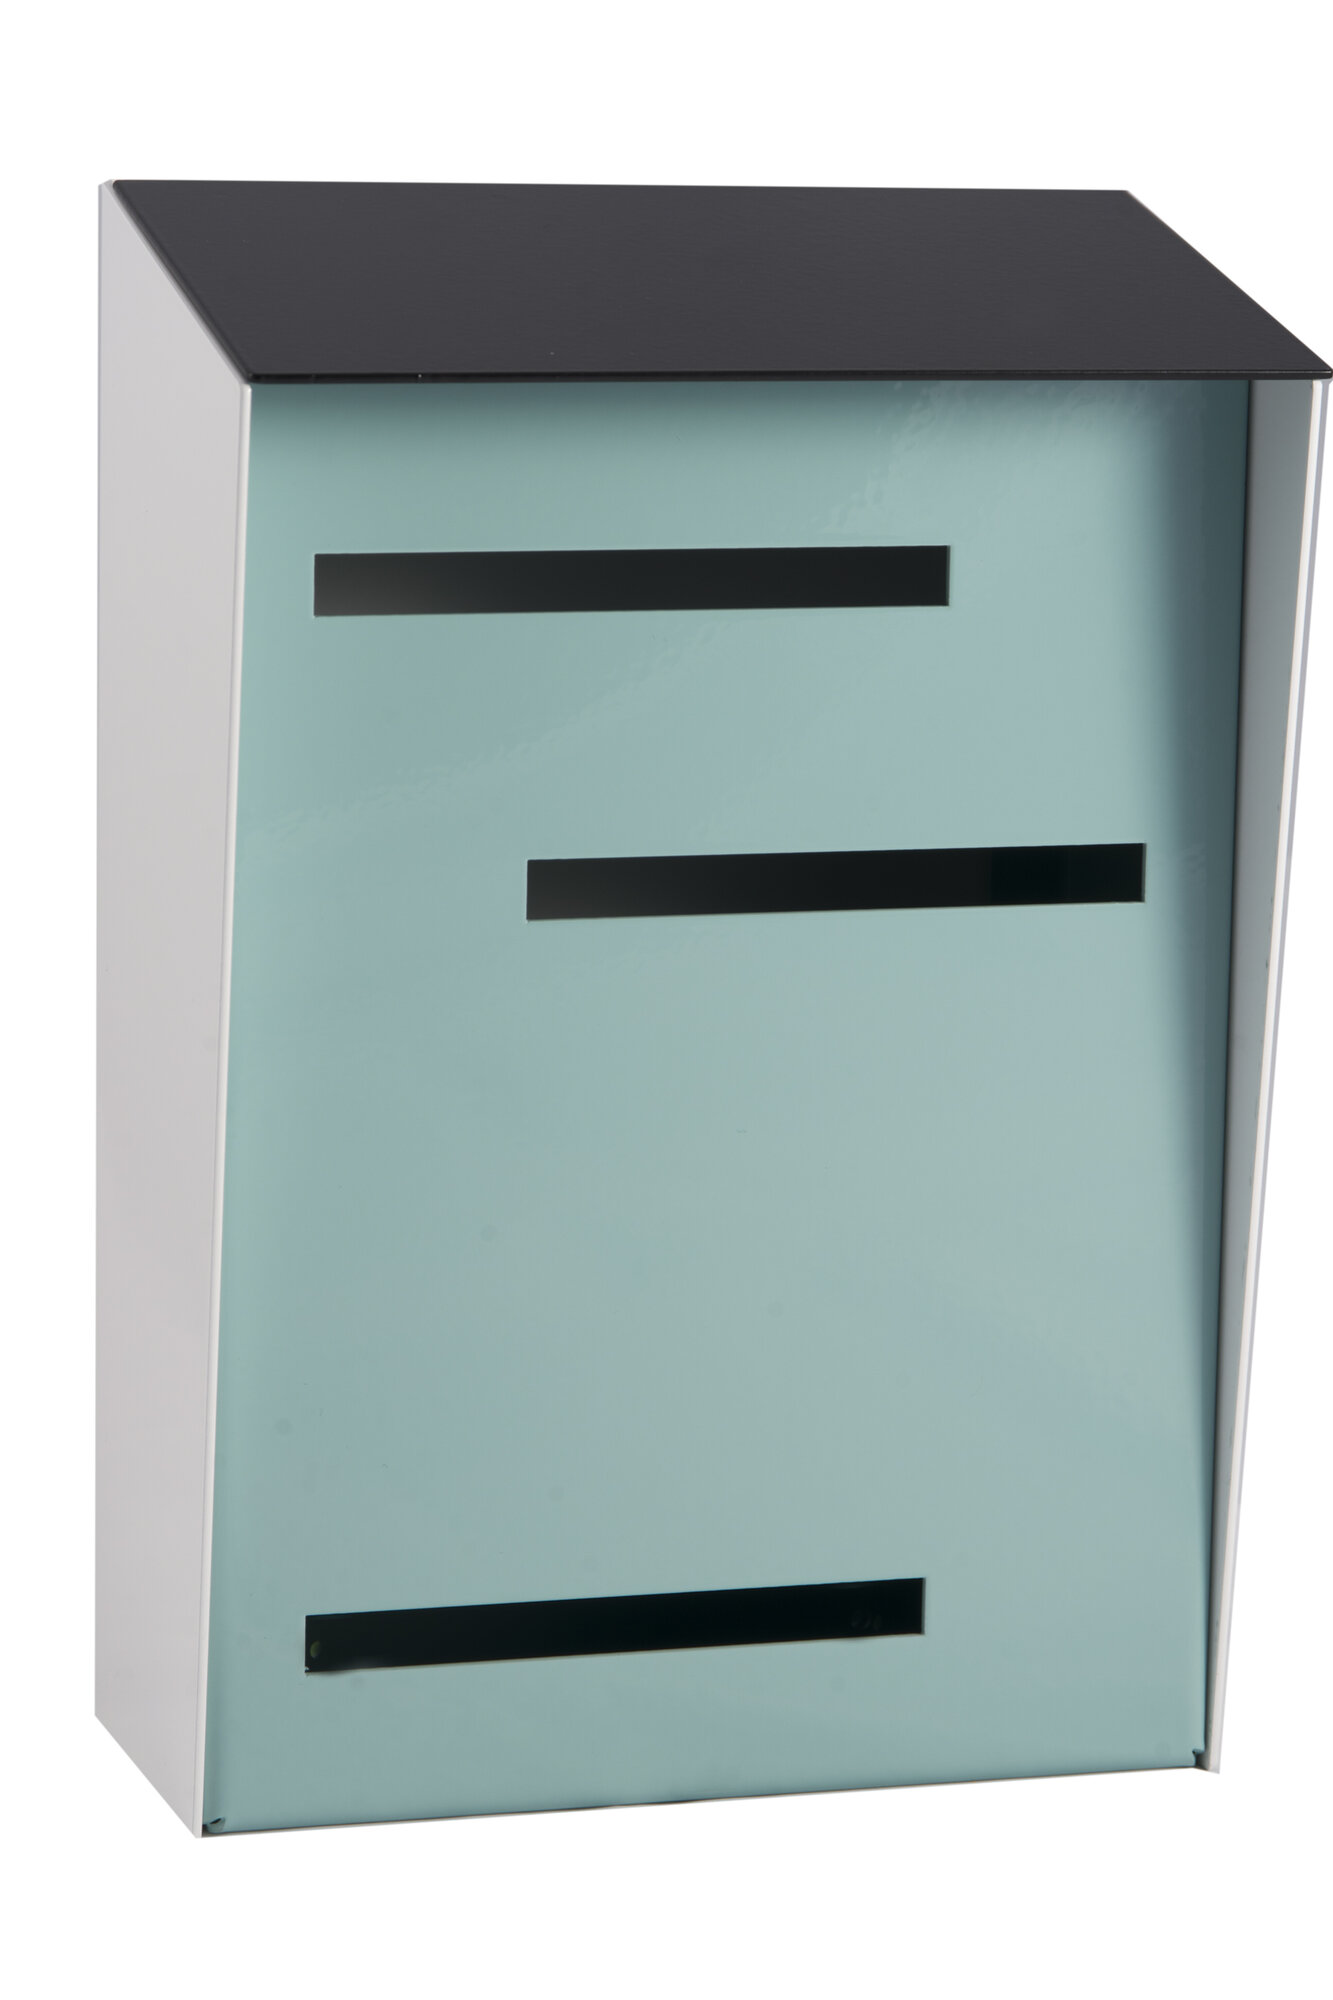 vertical wall mount mailbox. Modern-Mailbox-Vertical-Wall-Mounted-Mailbox Vertical Wall Mount Mailbox